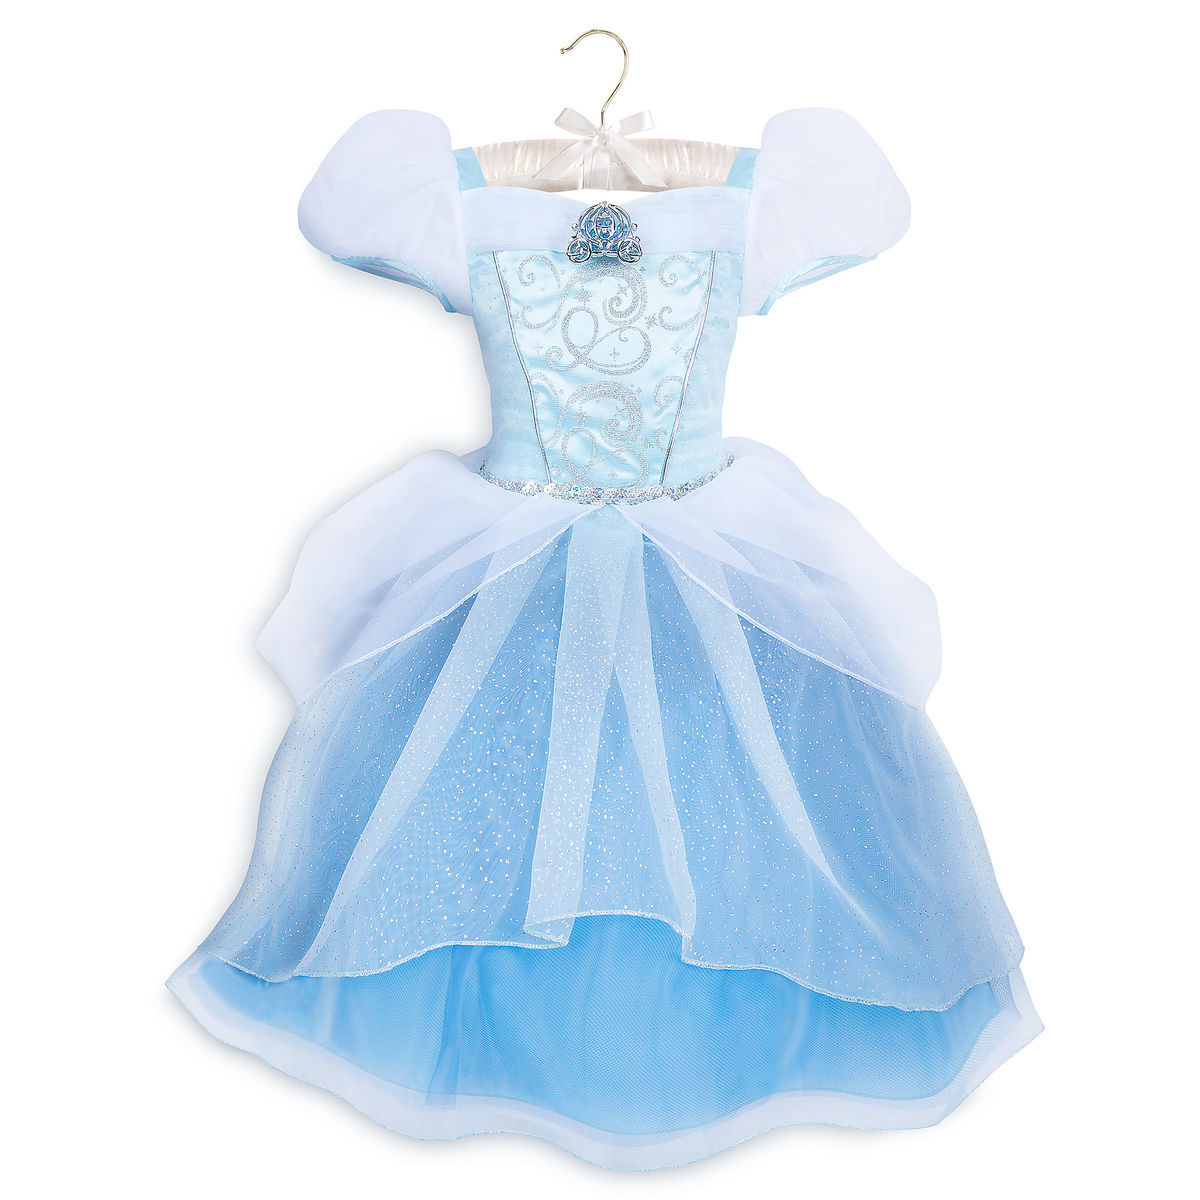 Cinderella Costume for Kids | shopDisney